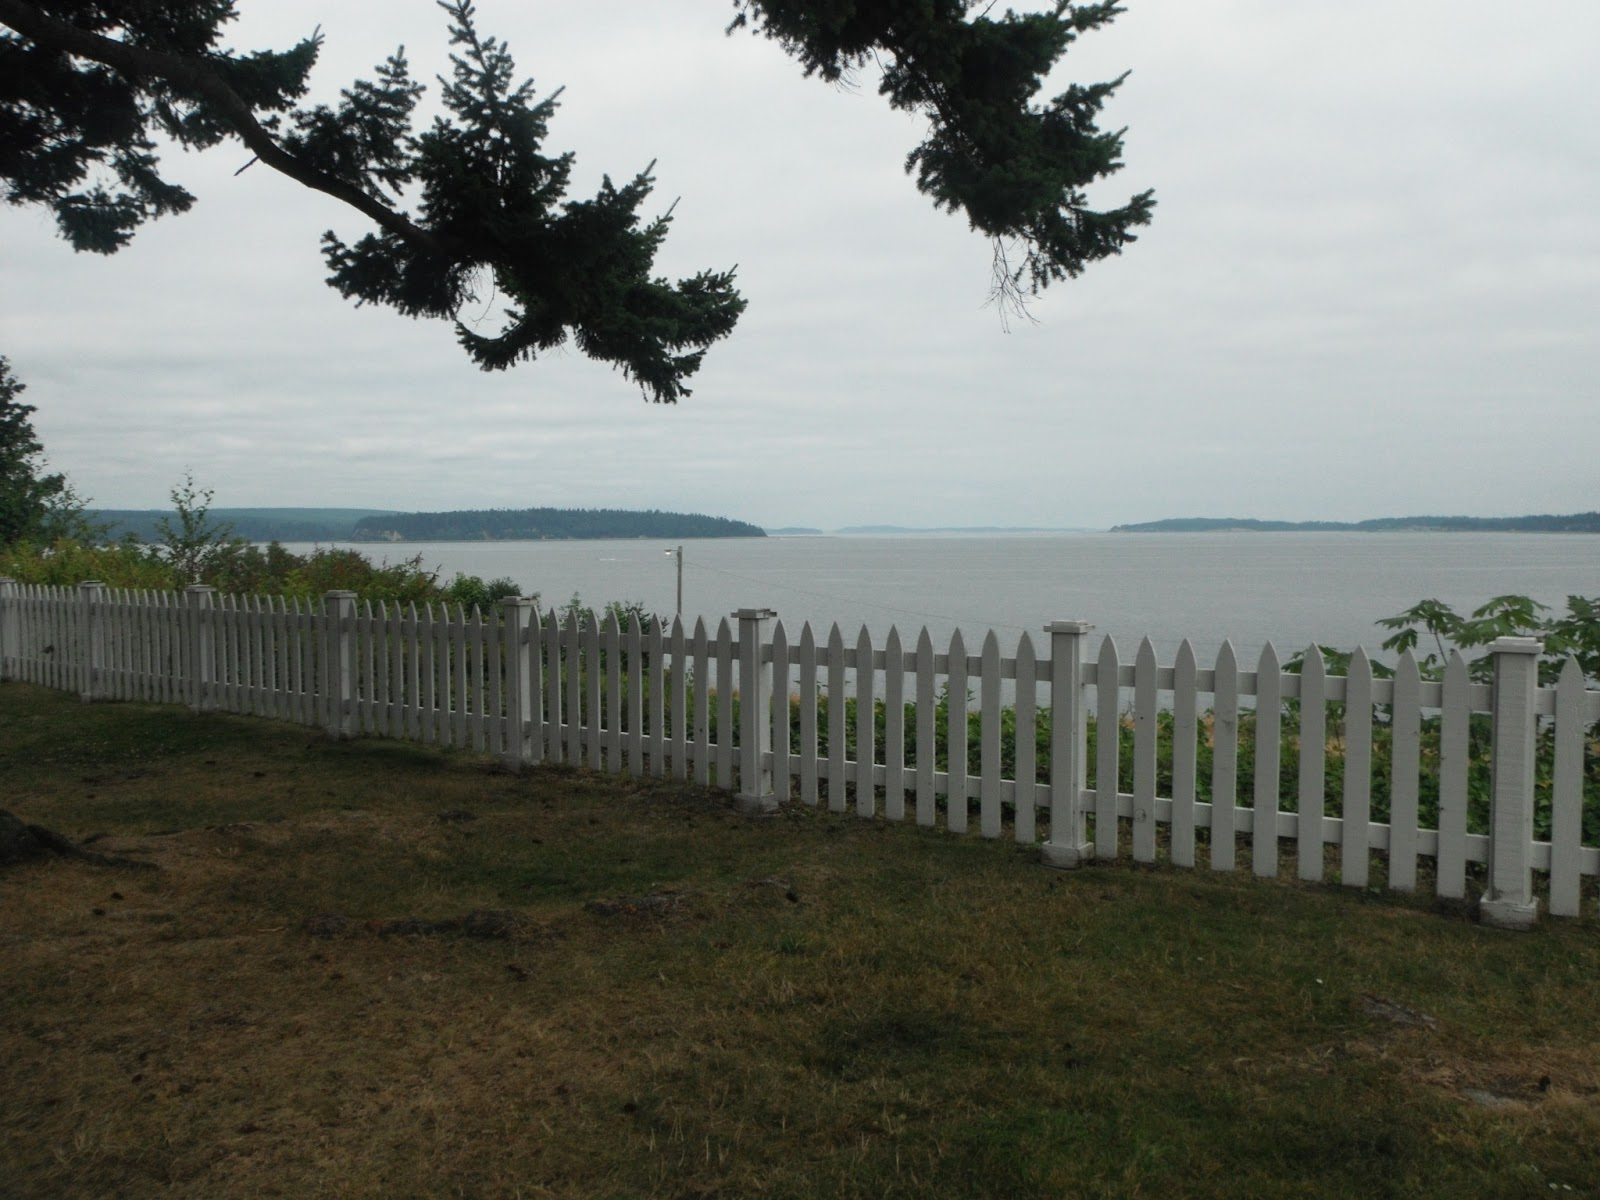 port gamble chat sites Port gamble find port gamble washington campgrounds campgrounds provide information about camping, tent camping, reserveamerica, koa, rv resorts, campsites, and cabins quilcene campground 294964 us 101 quilcene wa 98376 139 miles from port gamble 206-303-7365.